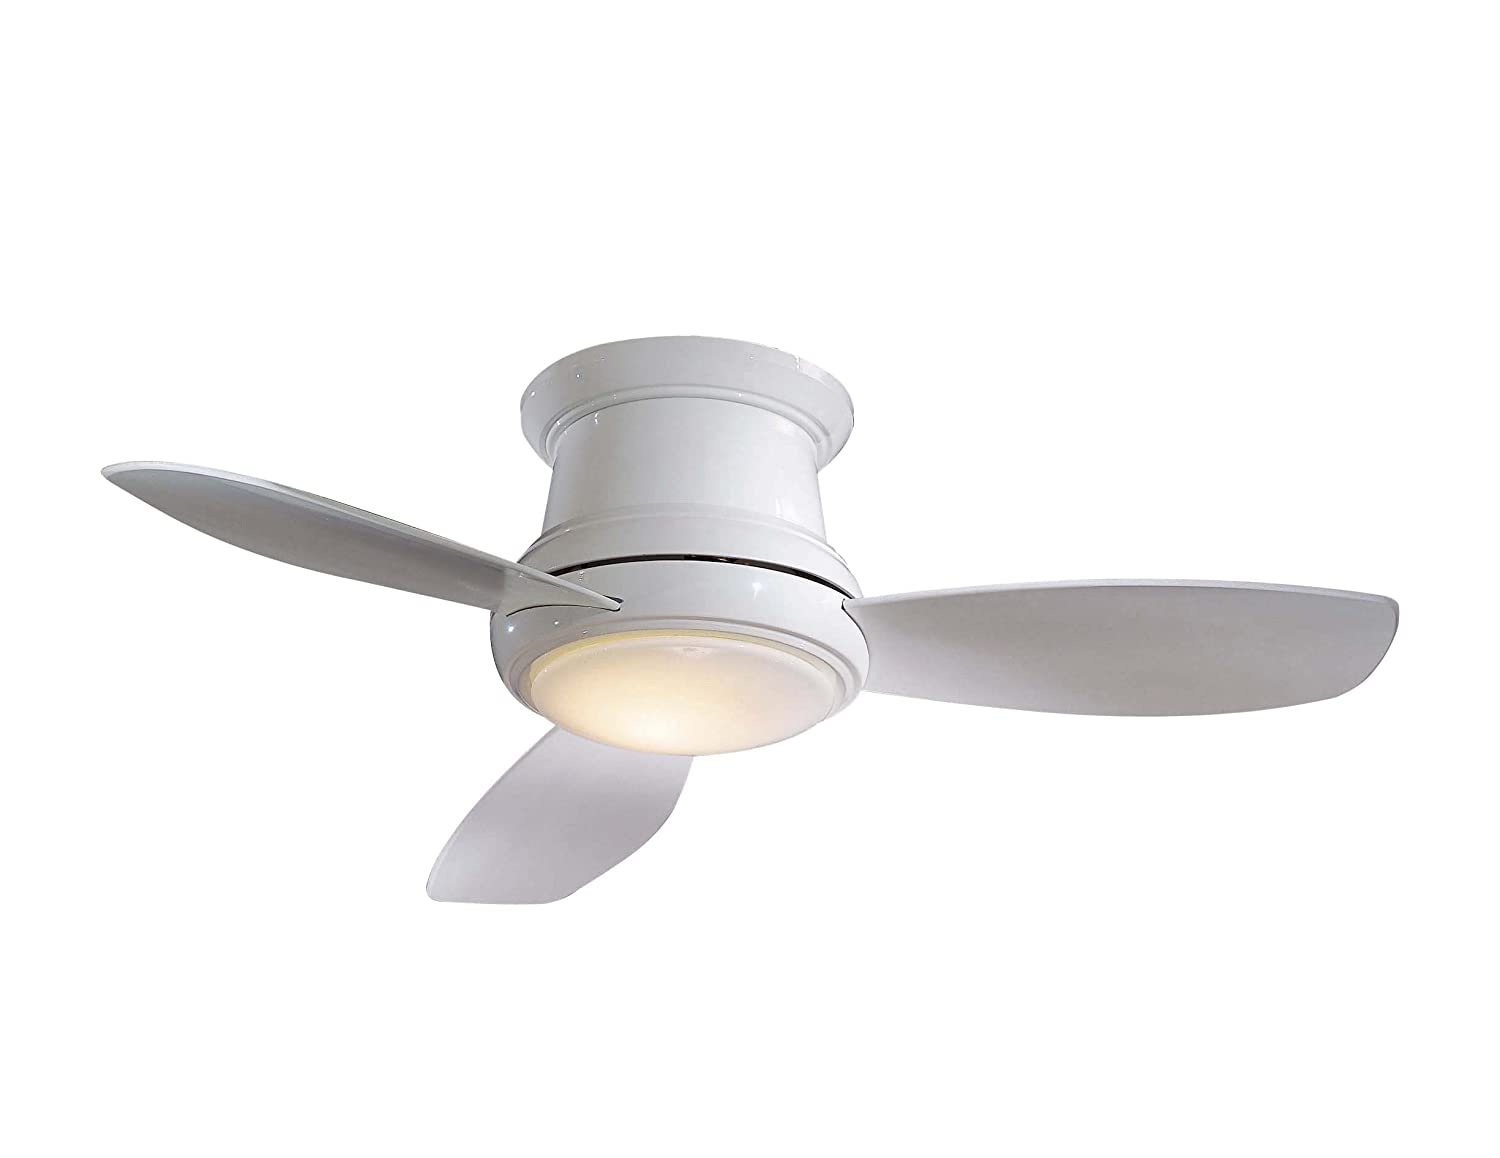 light eurofans lights with white ceiling landscapings a fan to control remote ceilings fans neptune led home how connect